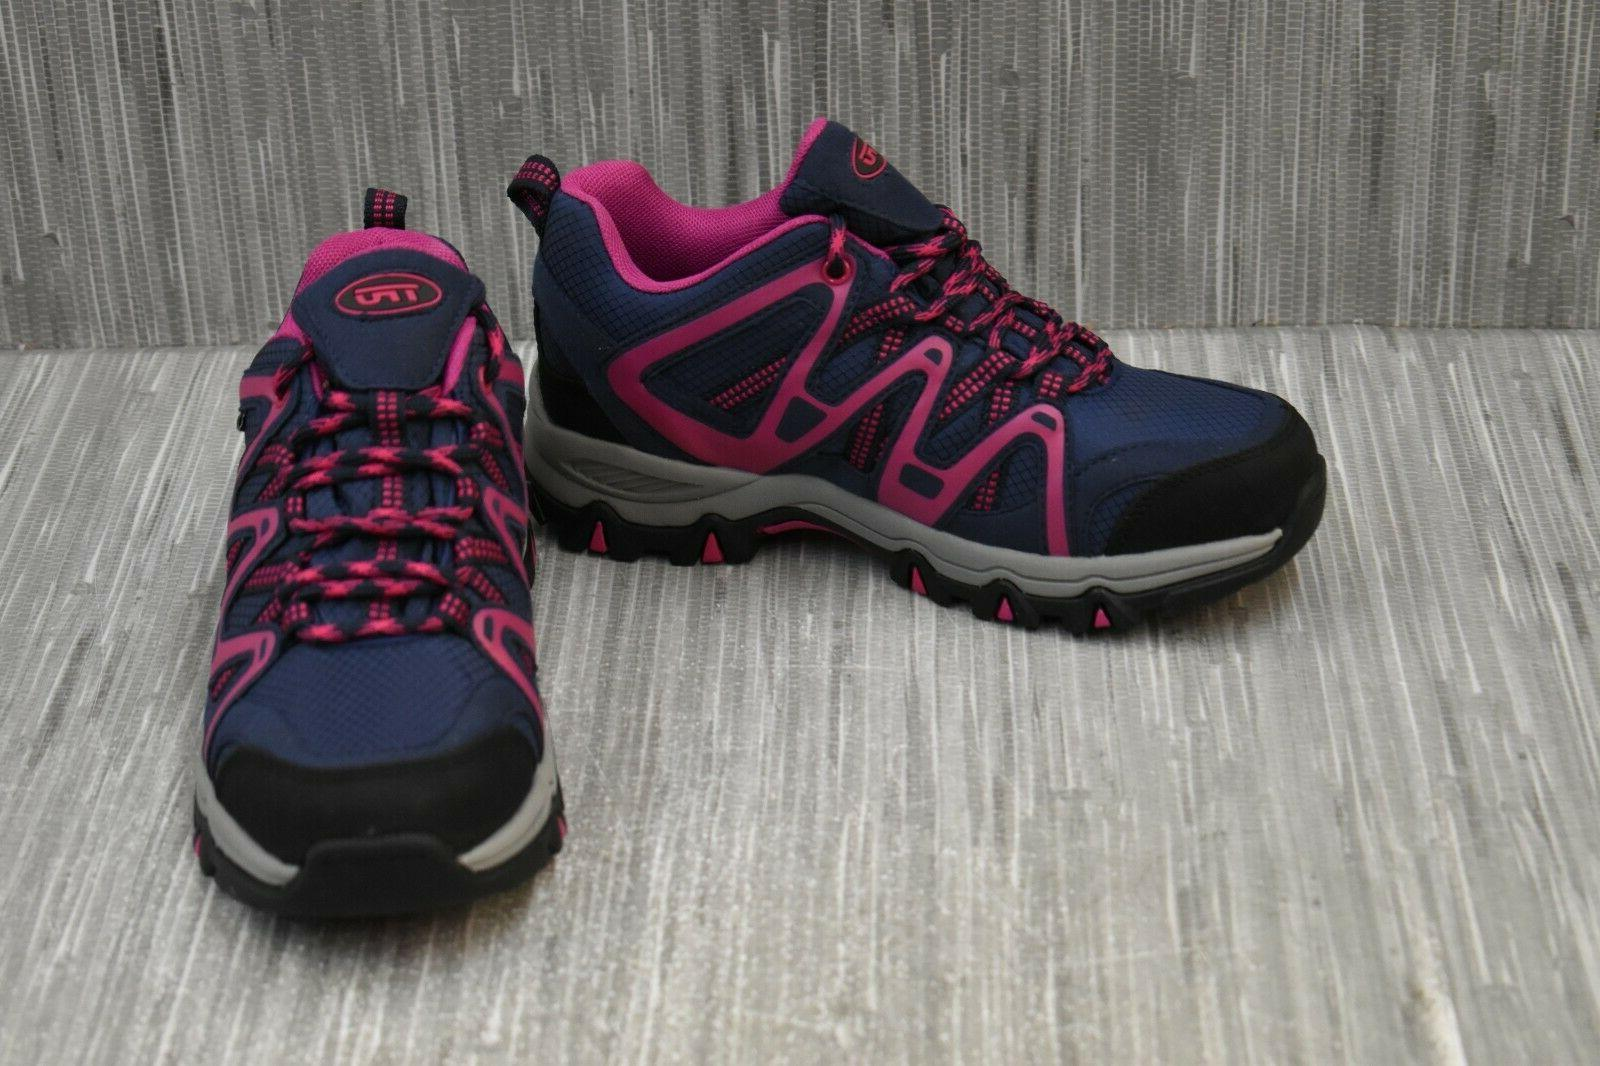 tfo outdoor hiking shoes women s size